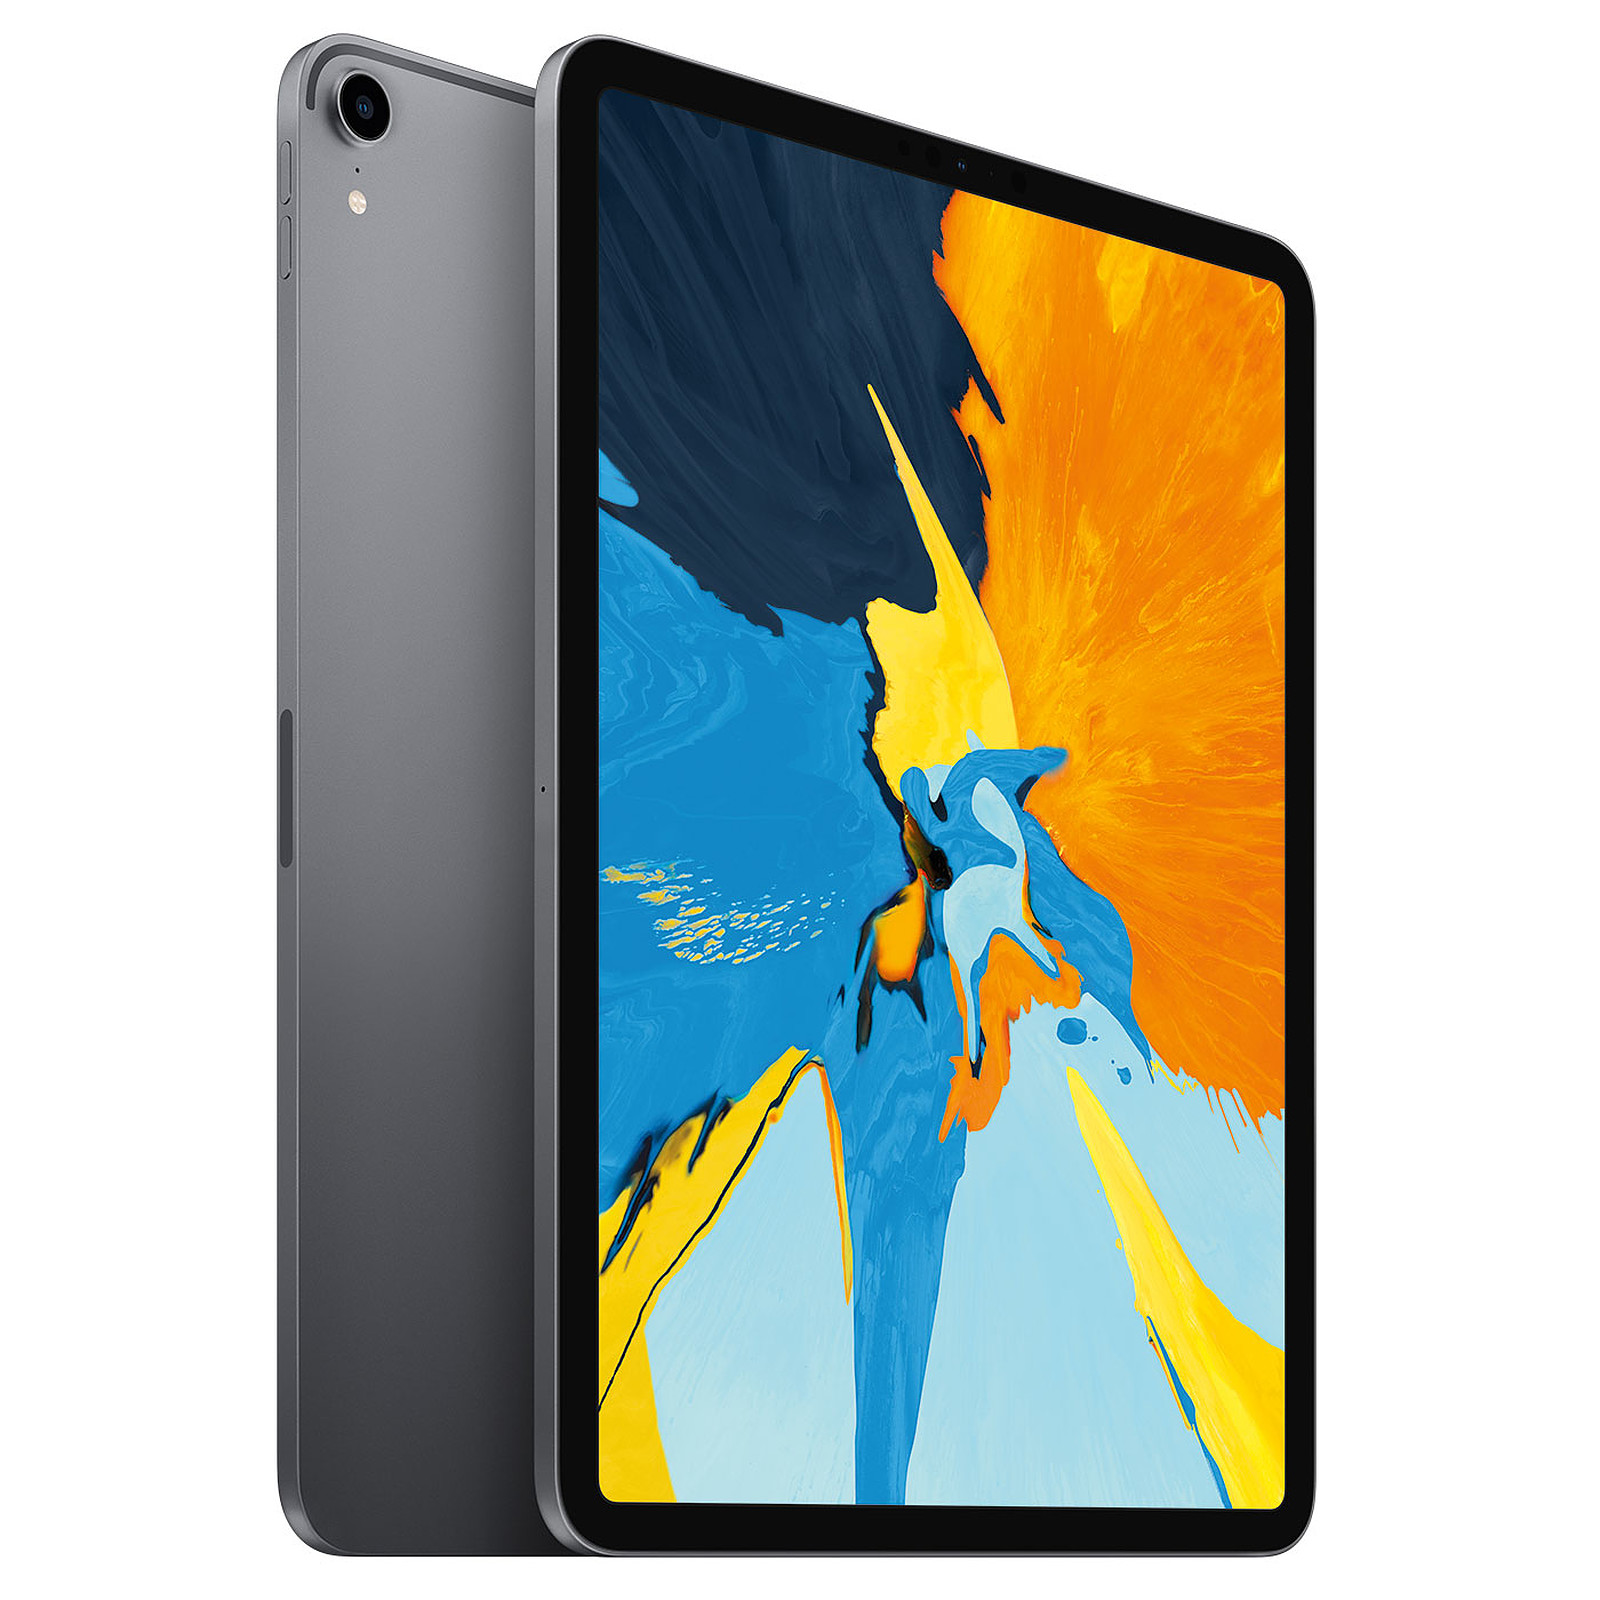 Apple iPad Pro 11-inch Wi-Fi + LTE 256GB Space Gray (2018)